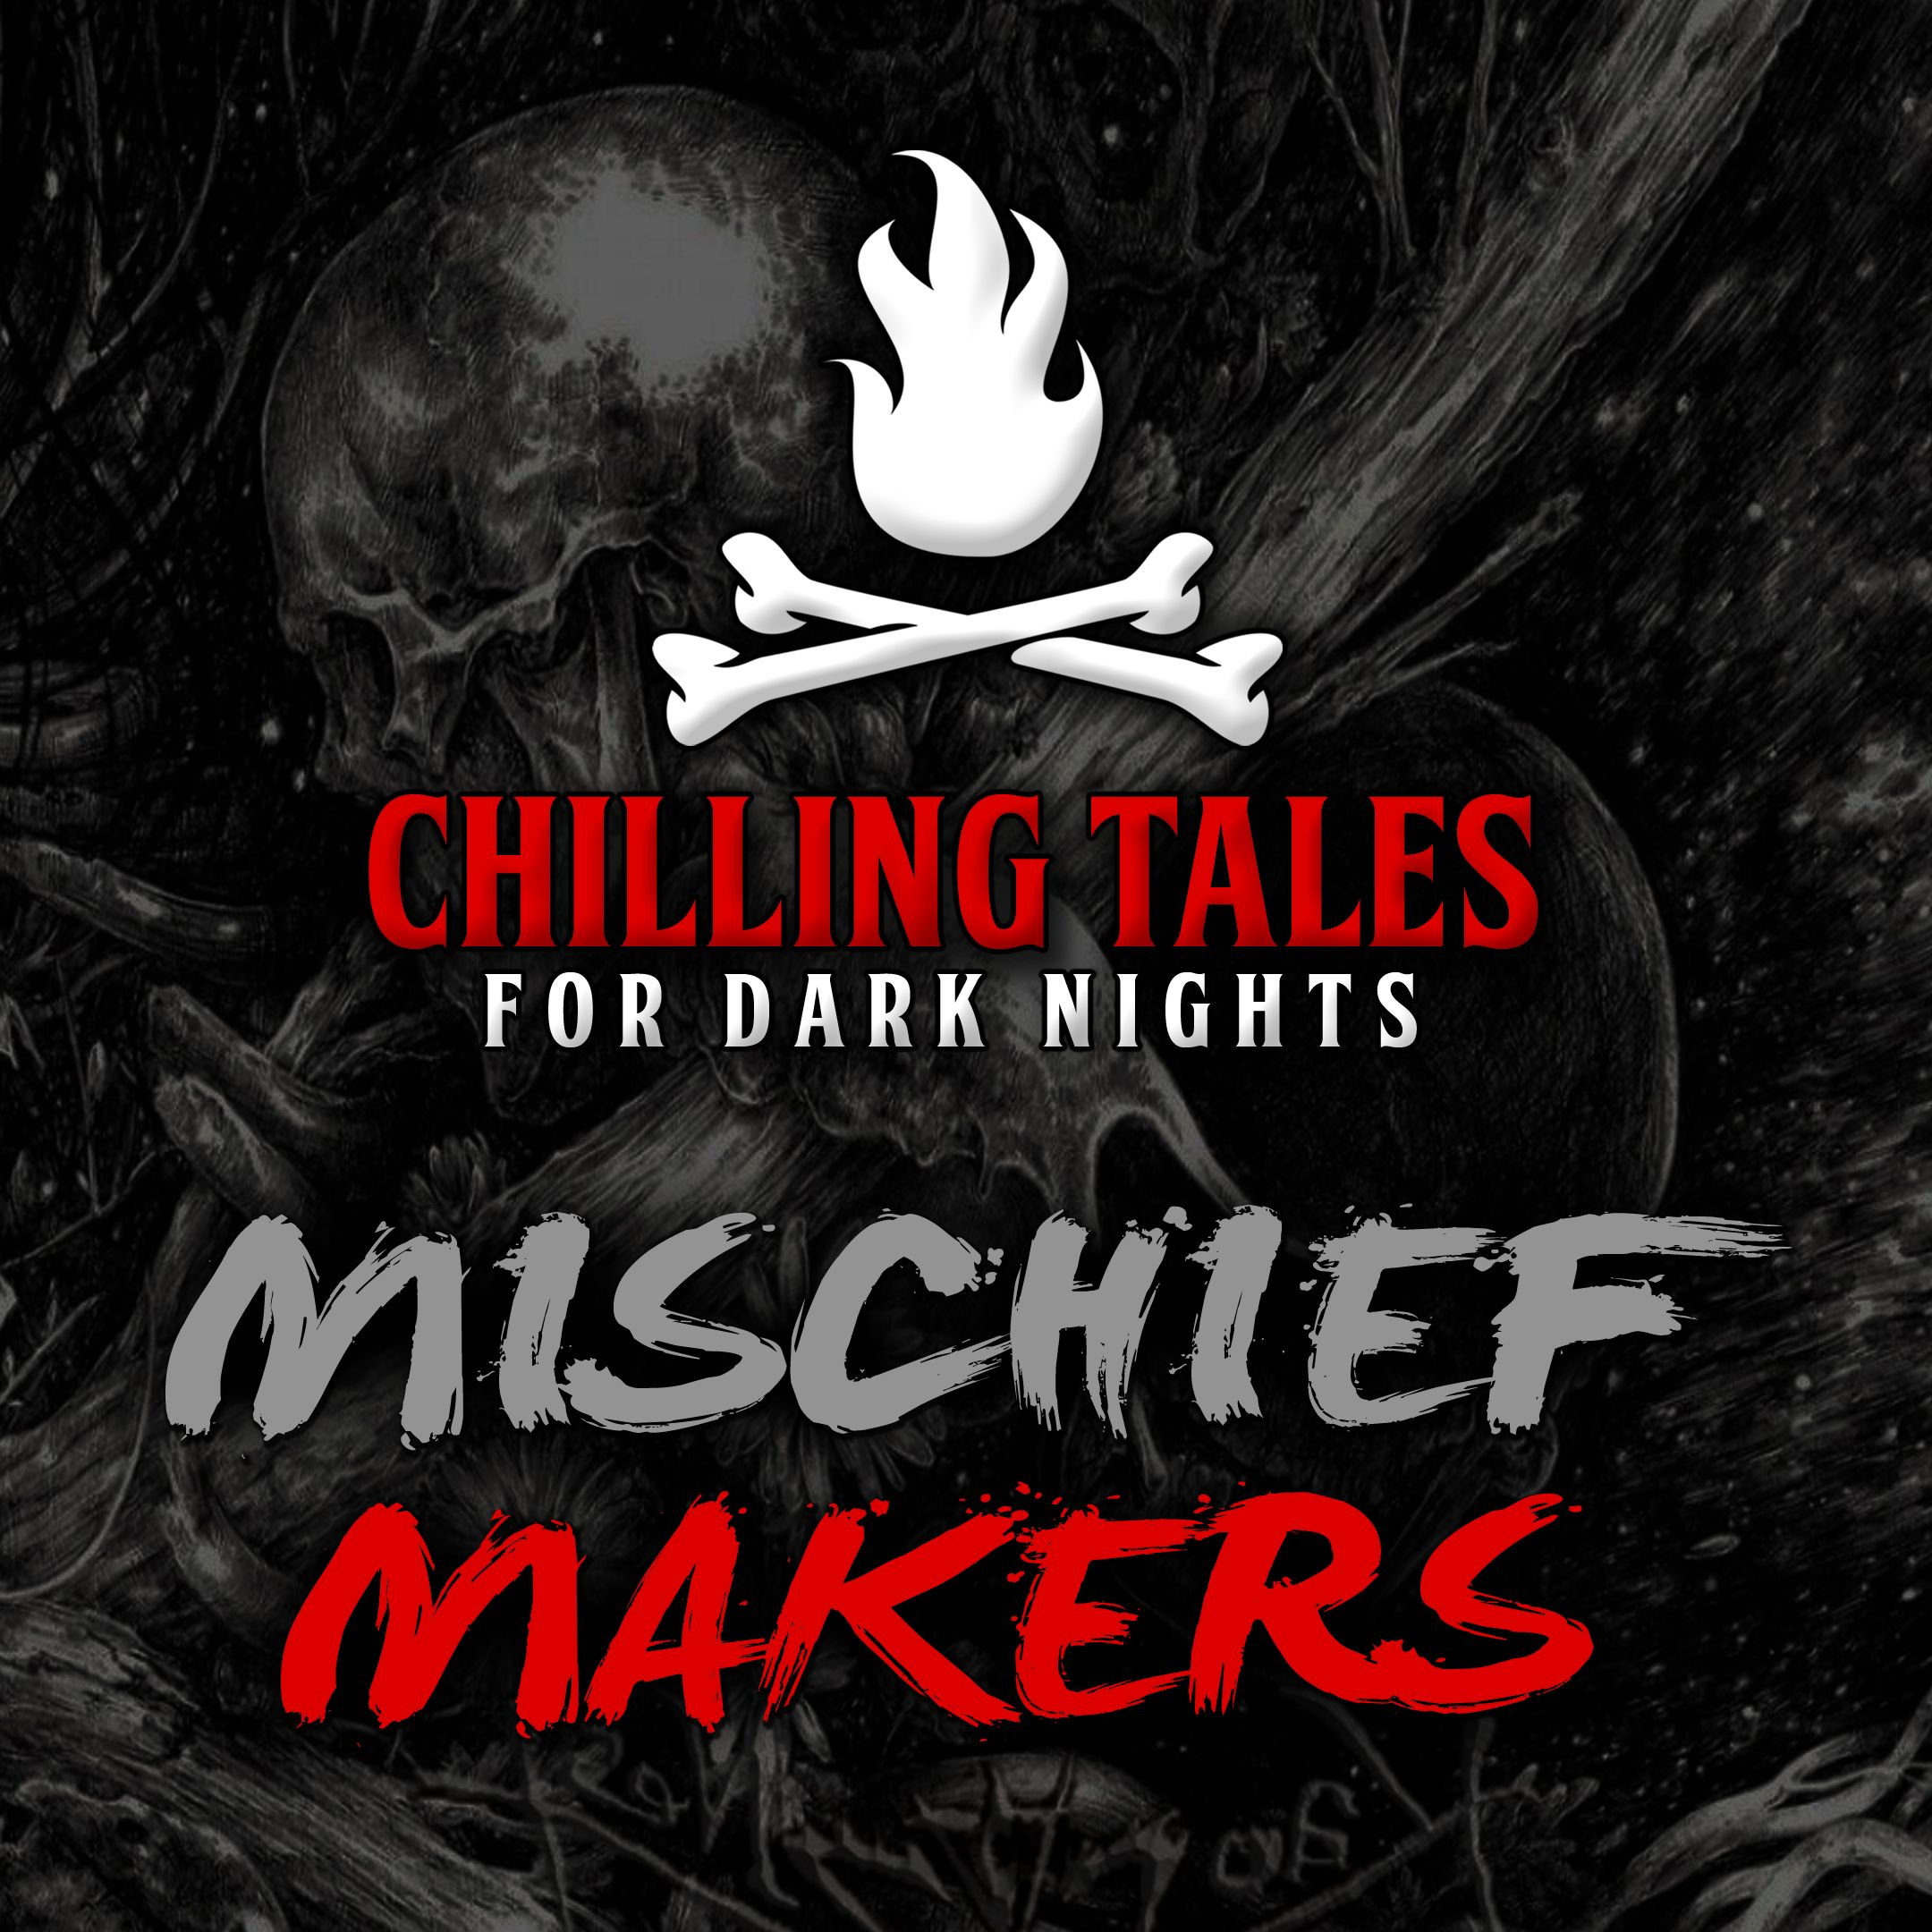 65: Mischief Makers – Chilling Tales for Dark Nights